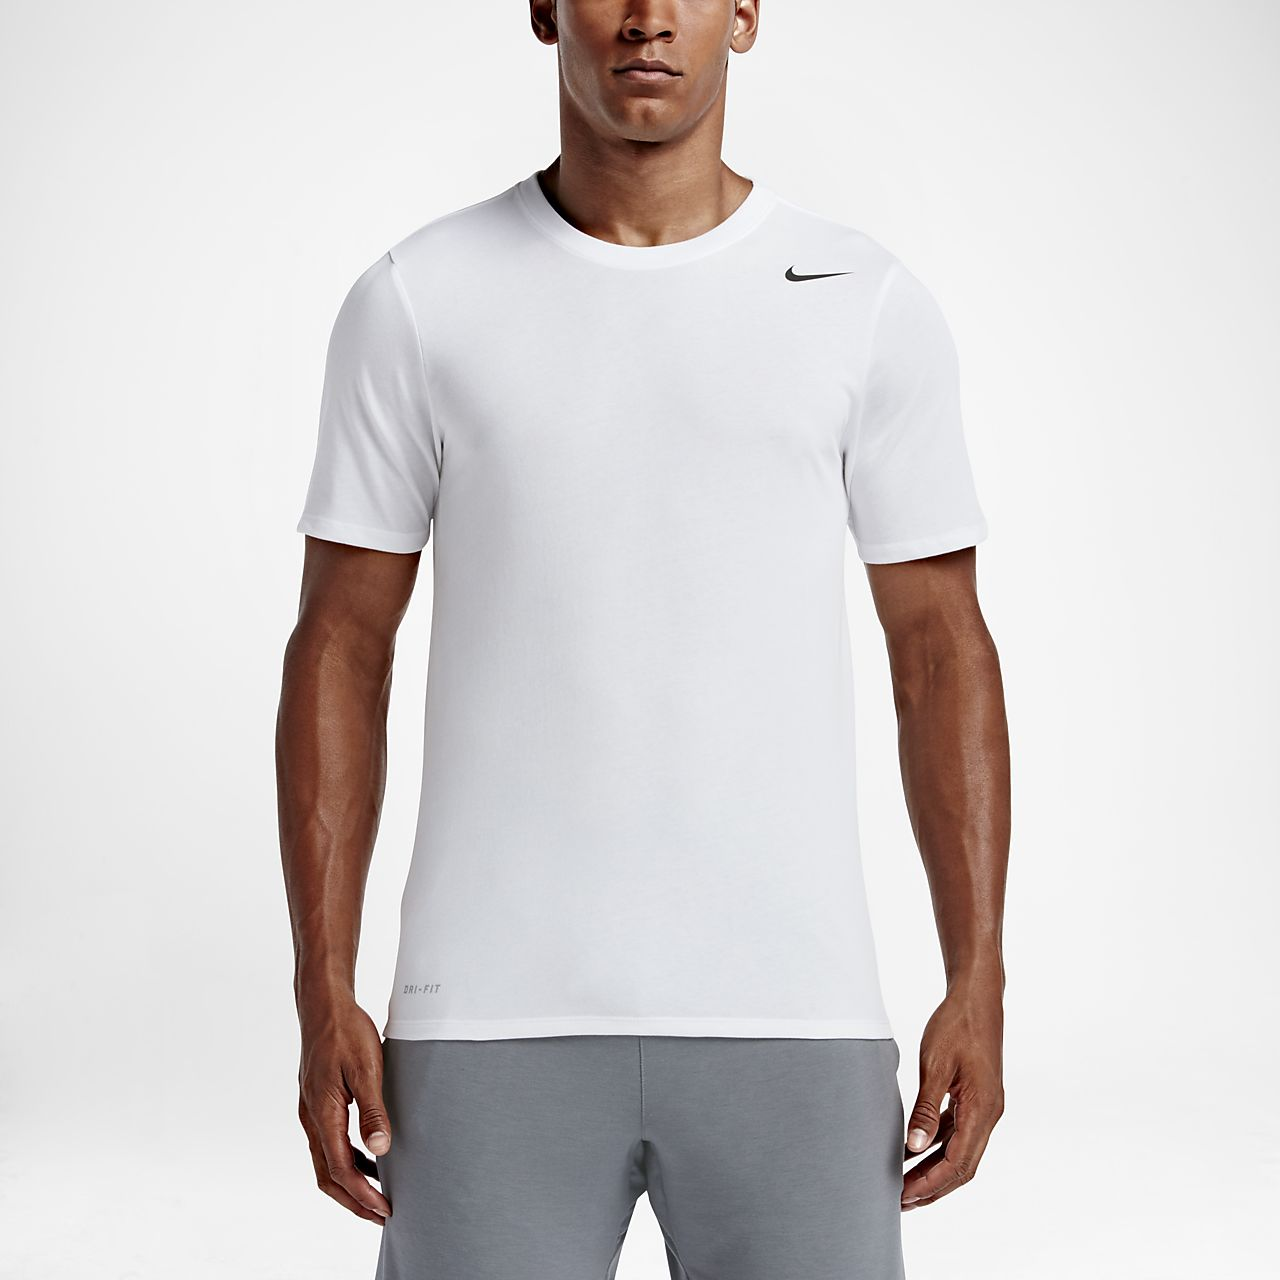 e87de351da53d Nike Dri-FIT Men s Training Short-Sleeve T-Shirt. Nike.com NZ